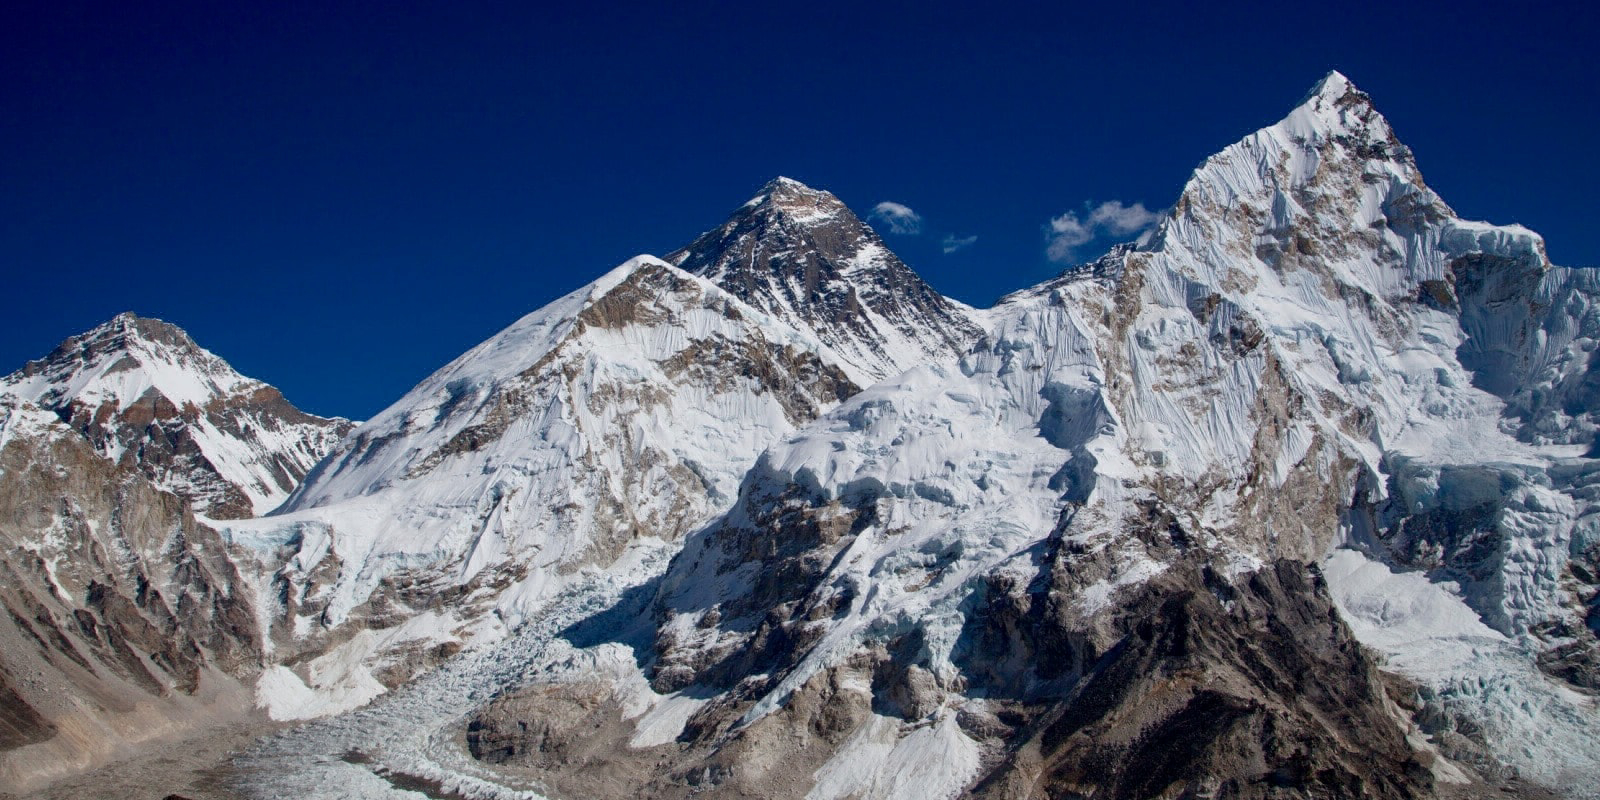 Everest Base Camp Trail